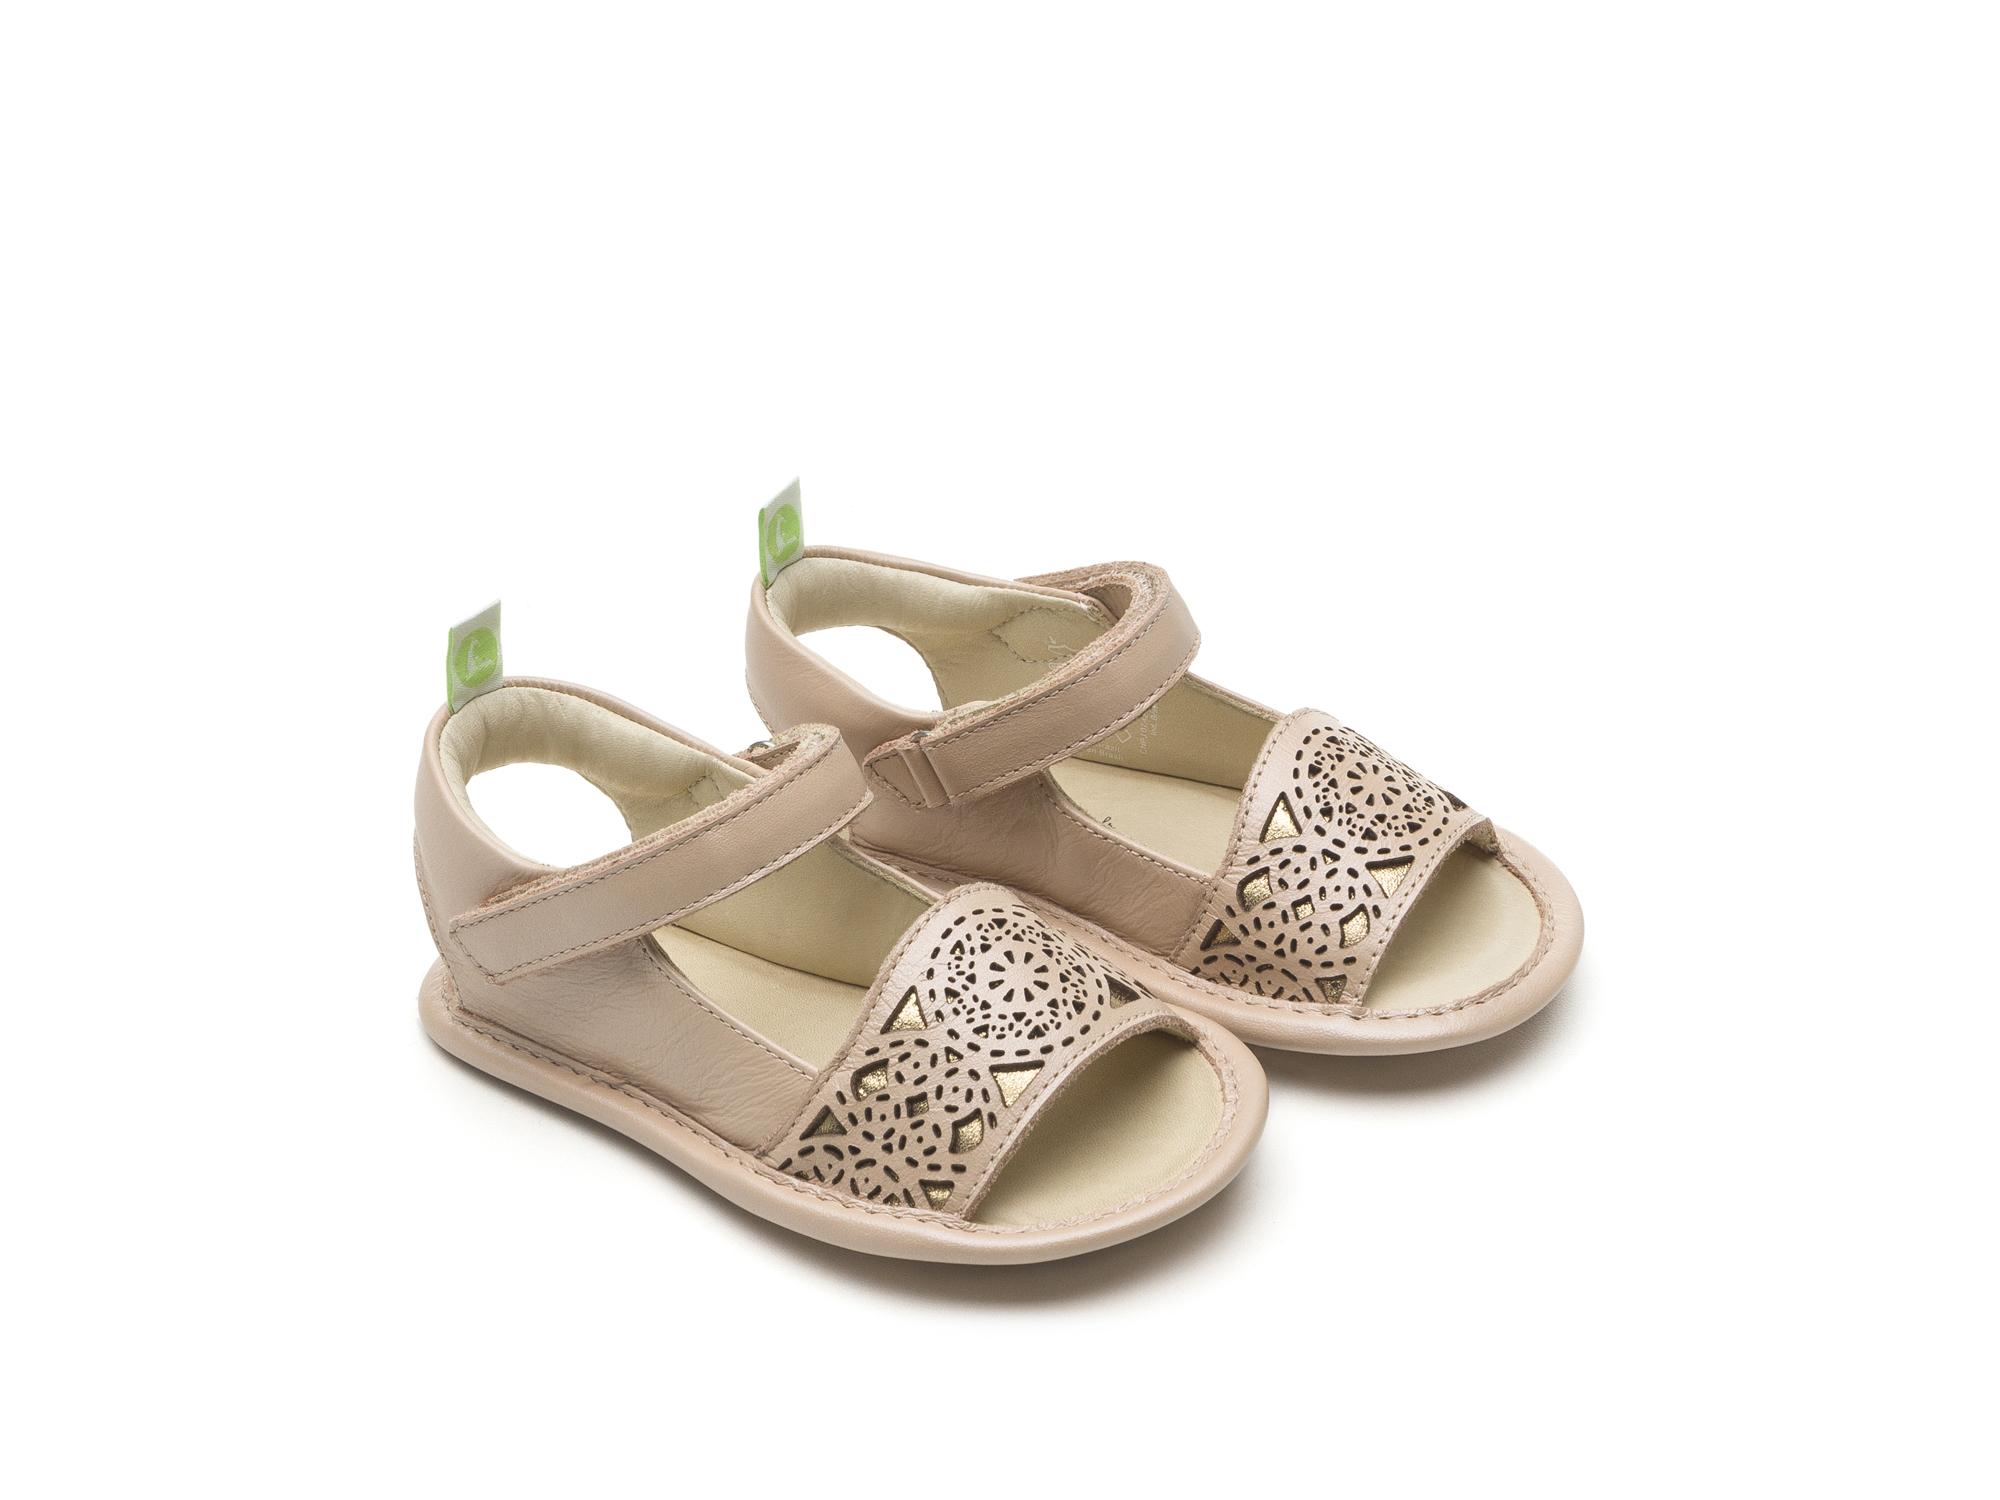 Sandal Mandaly Pink Perl/ Golden Shine Baby for ages 0 to 2 years - 0